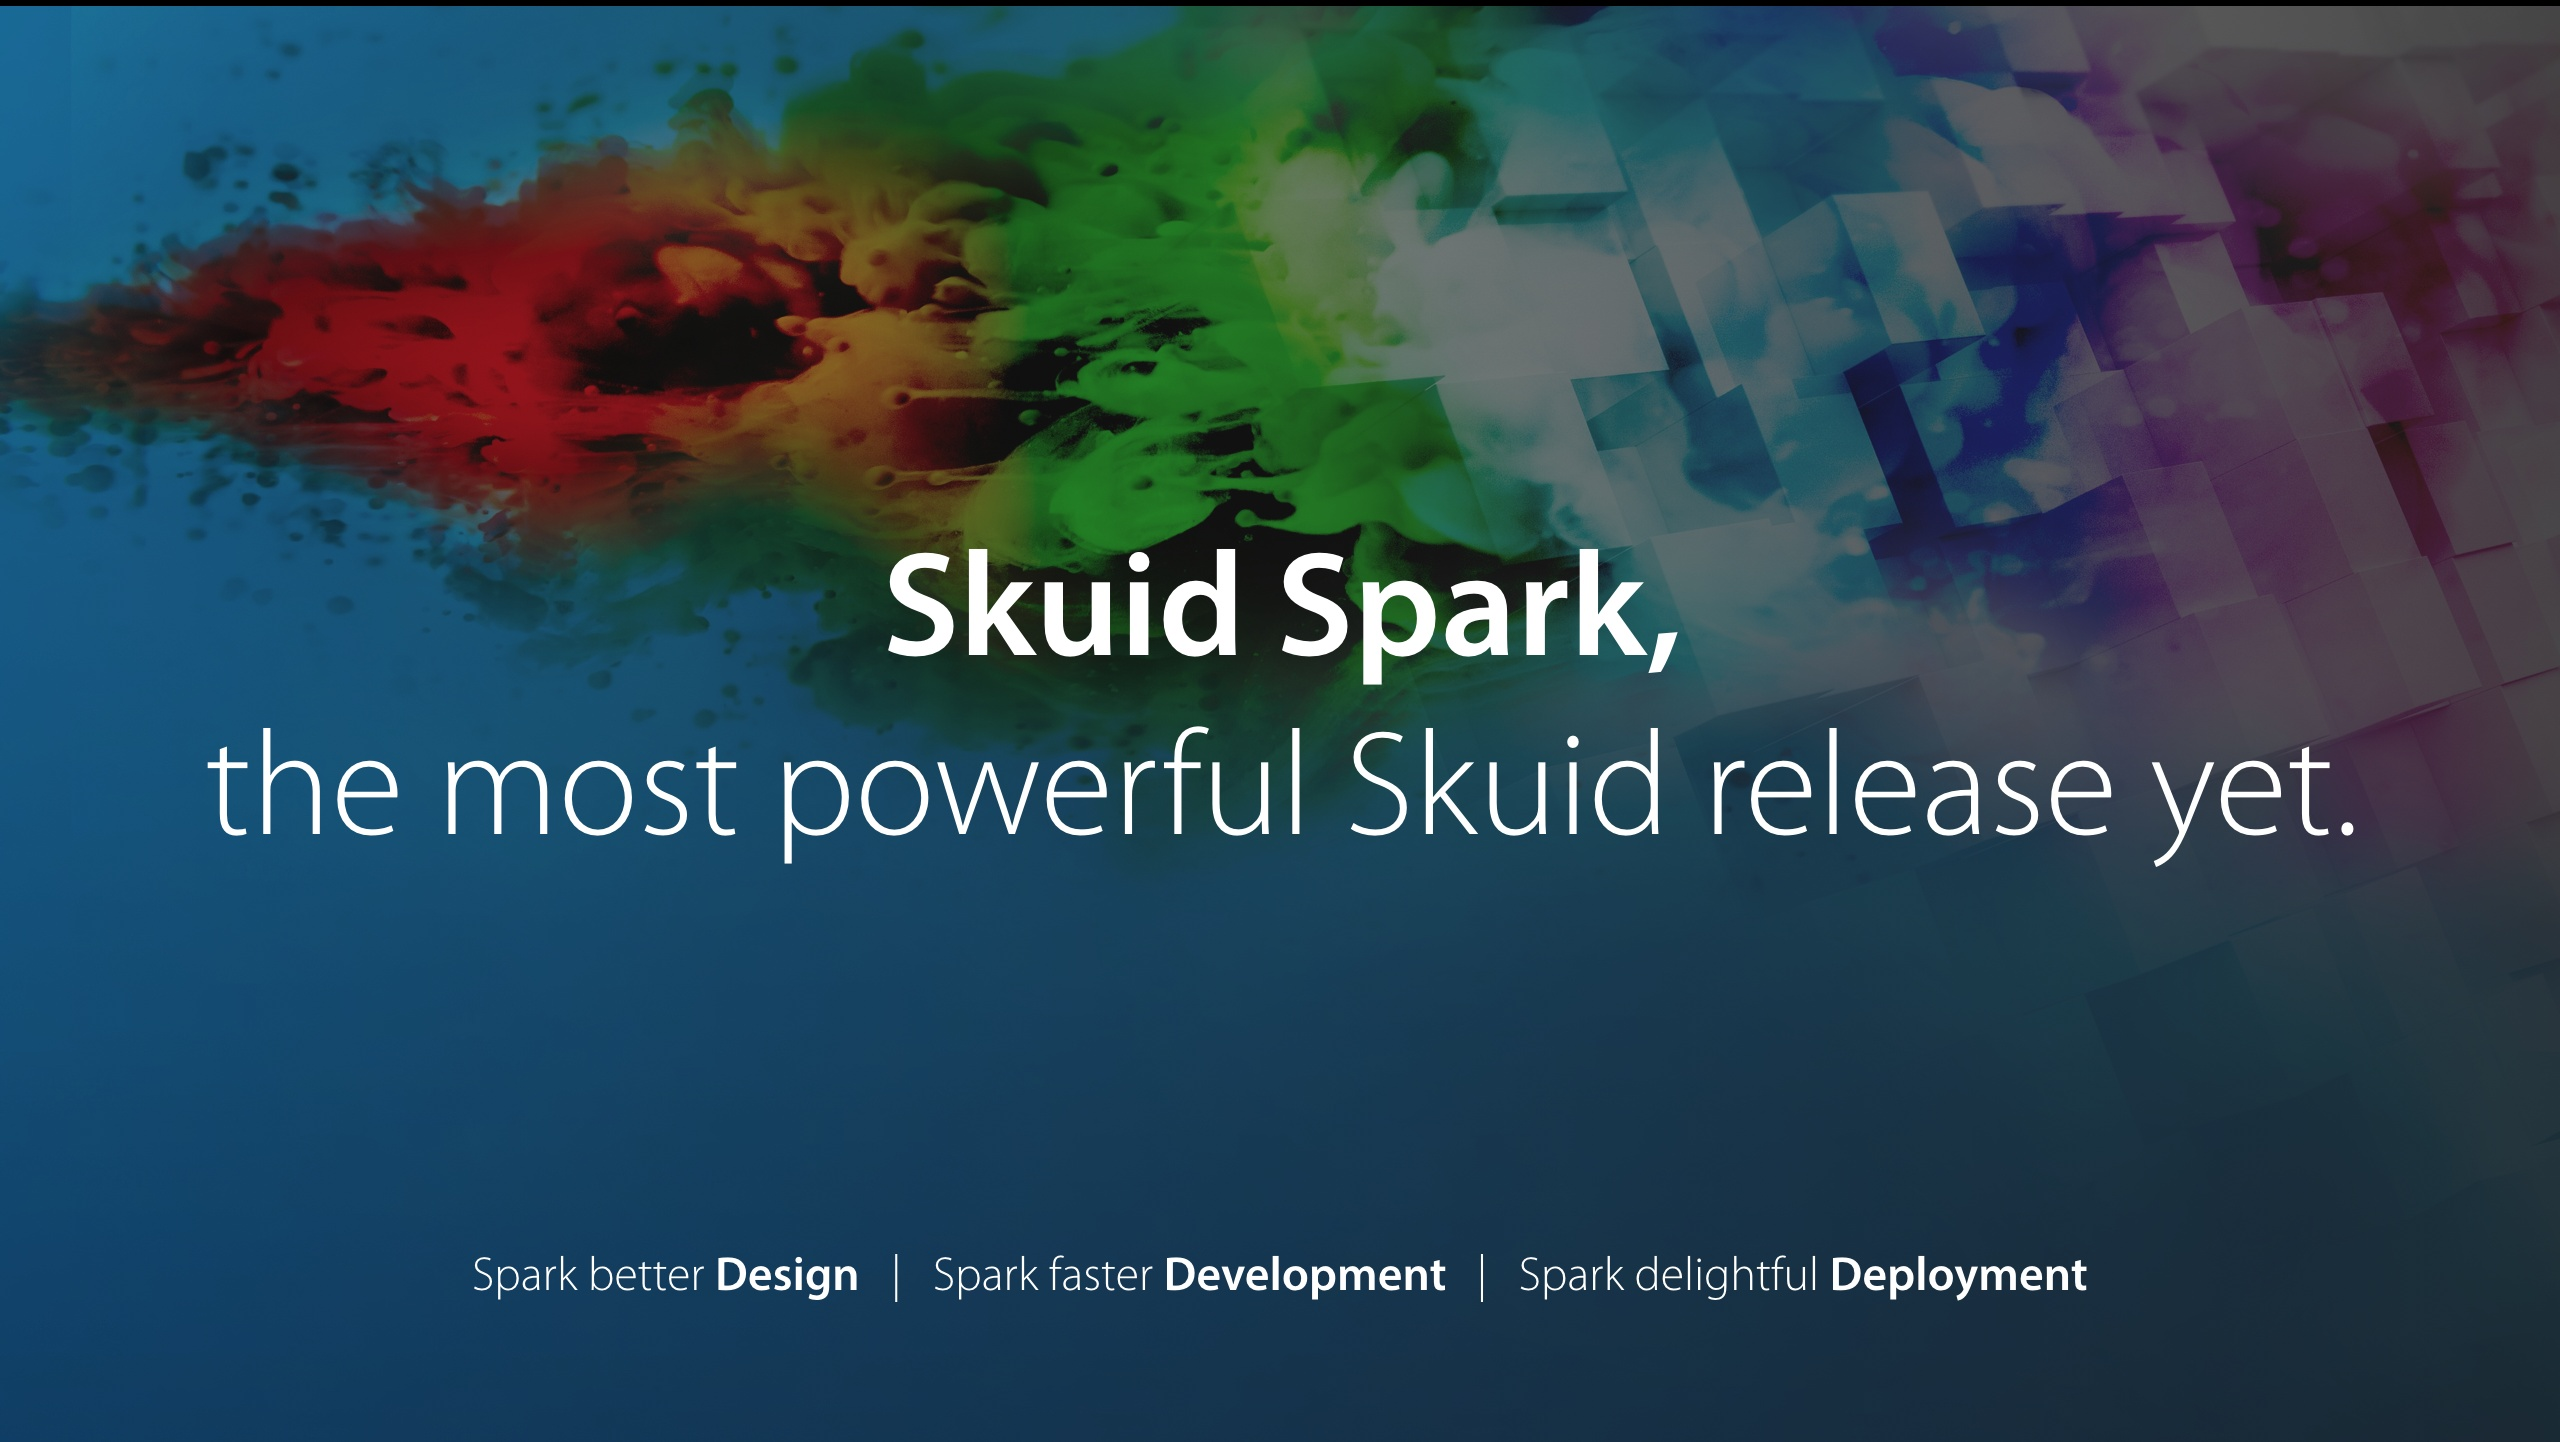 Reimagine enterprise applications with Skuid Spark